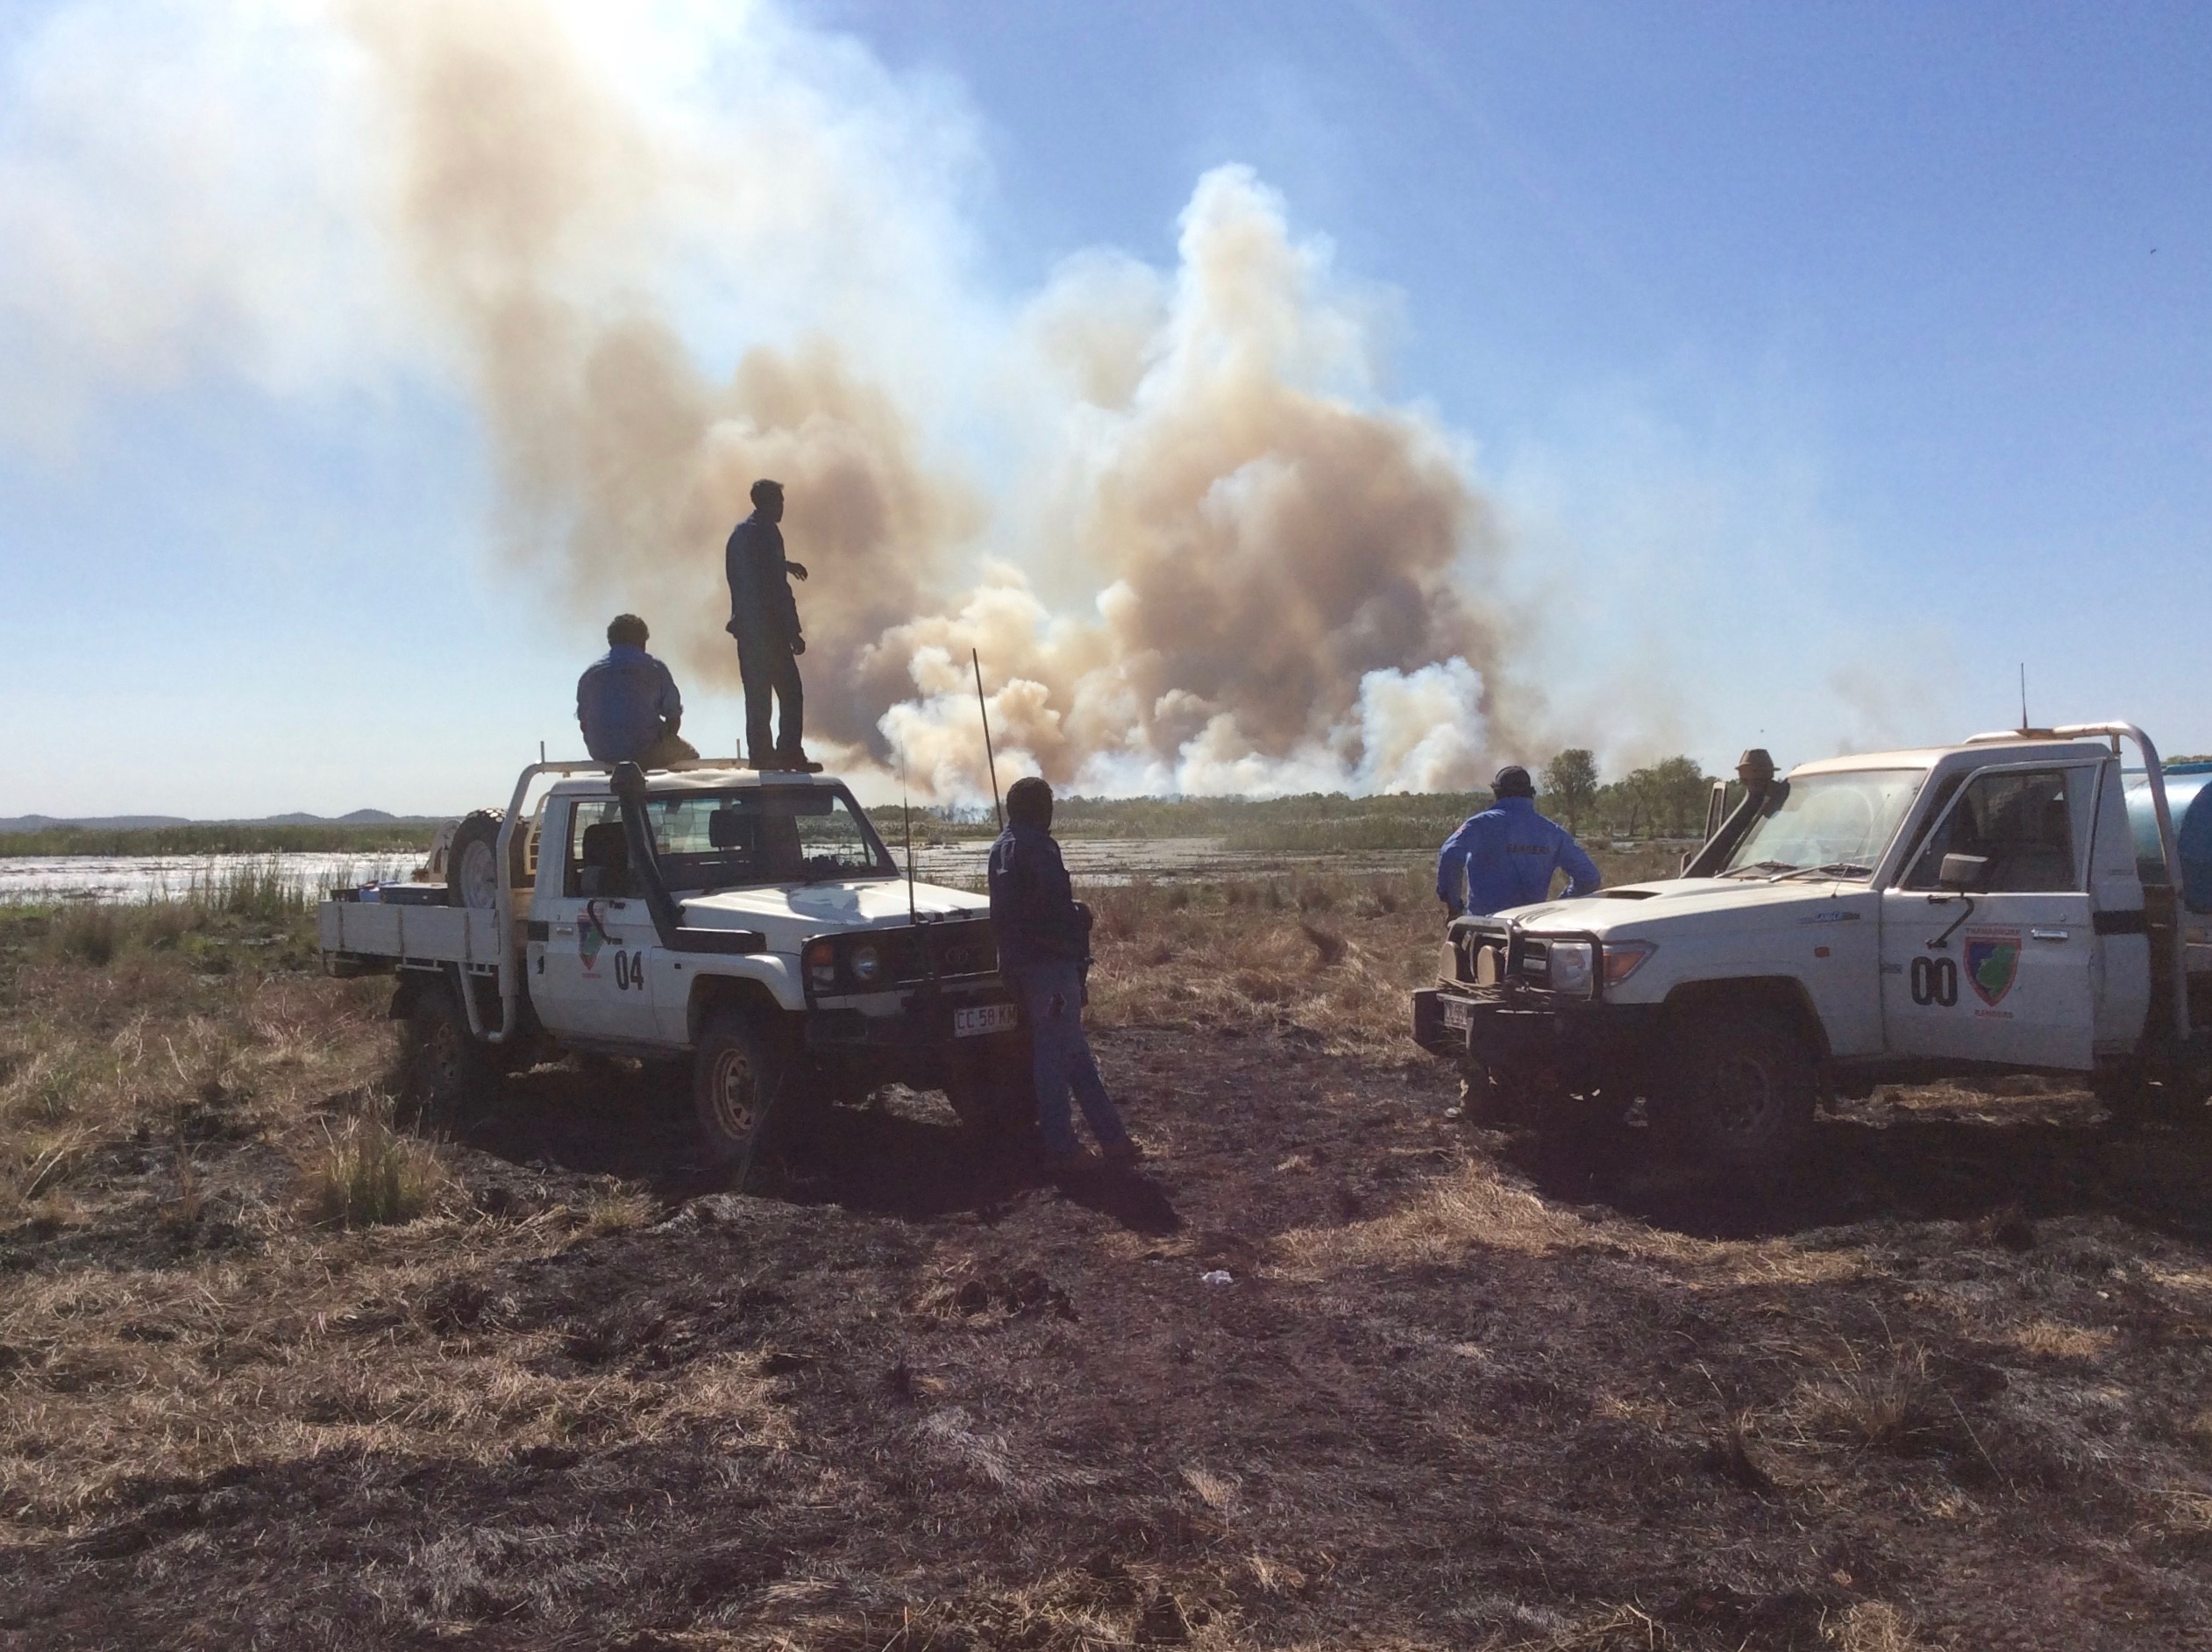 Thamarrurr Rangers work with neighbours to manage fire across the Daly region of the Northern Territory